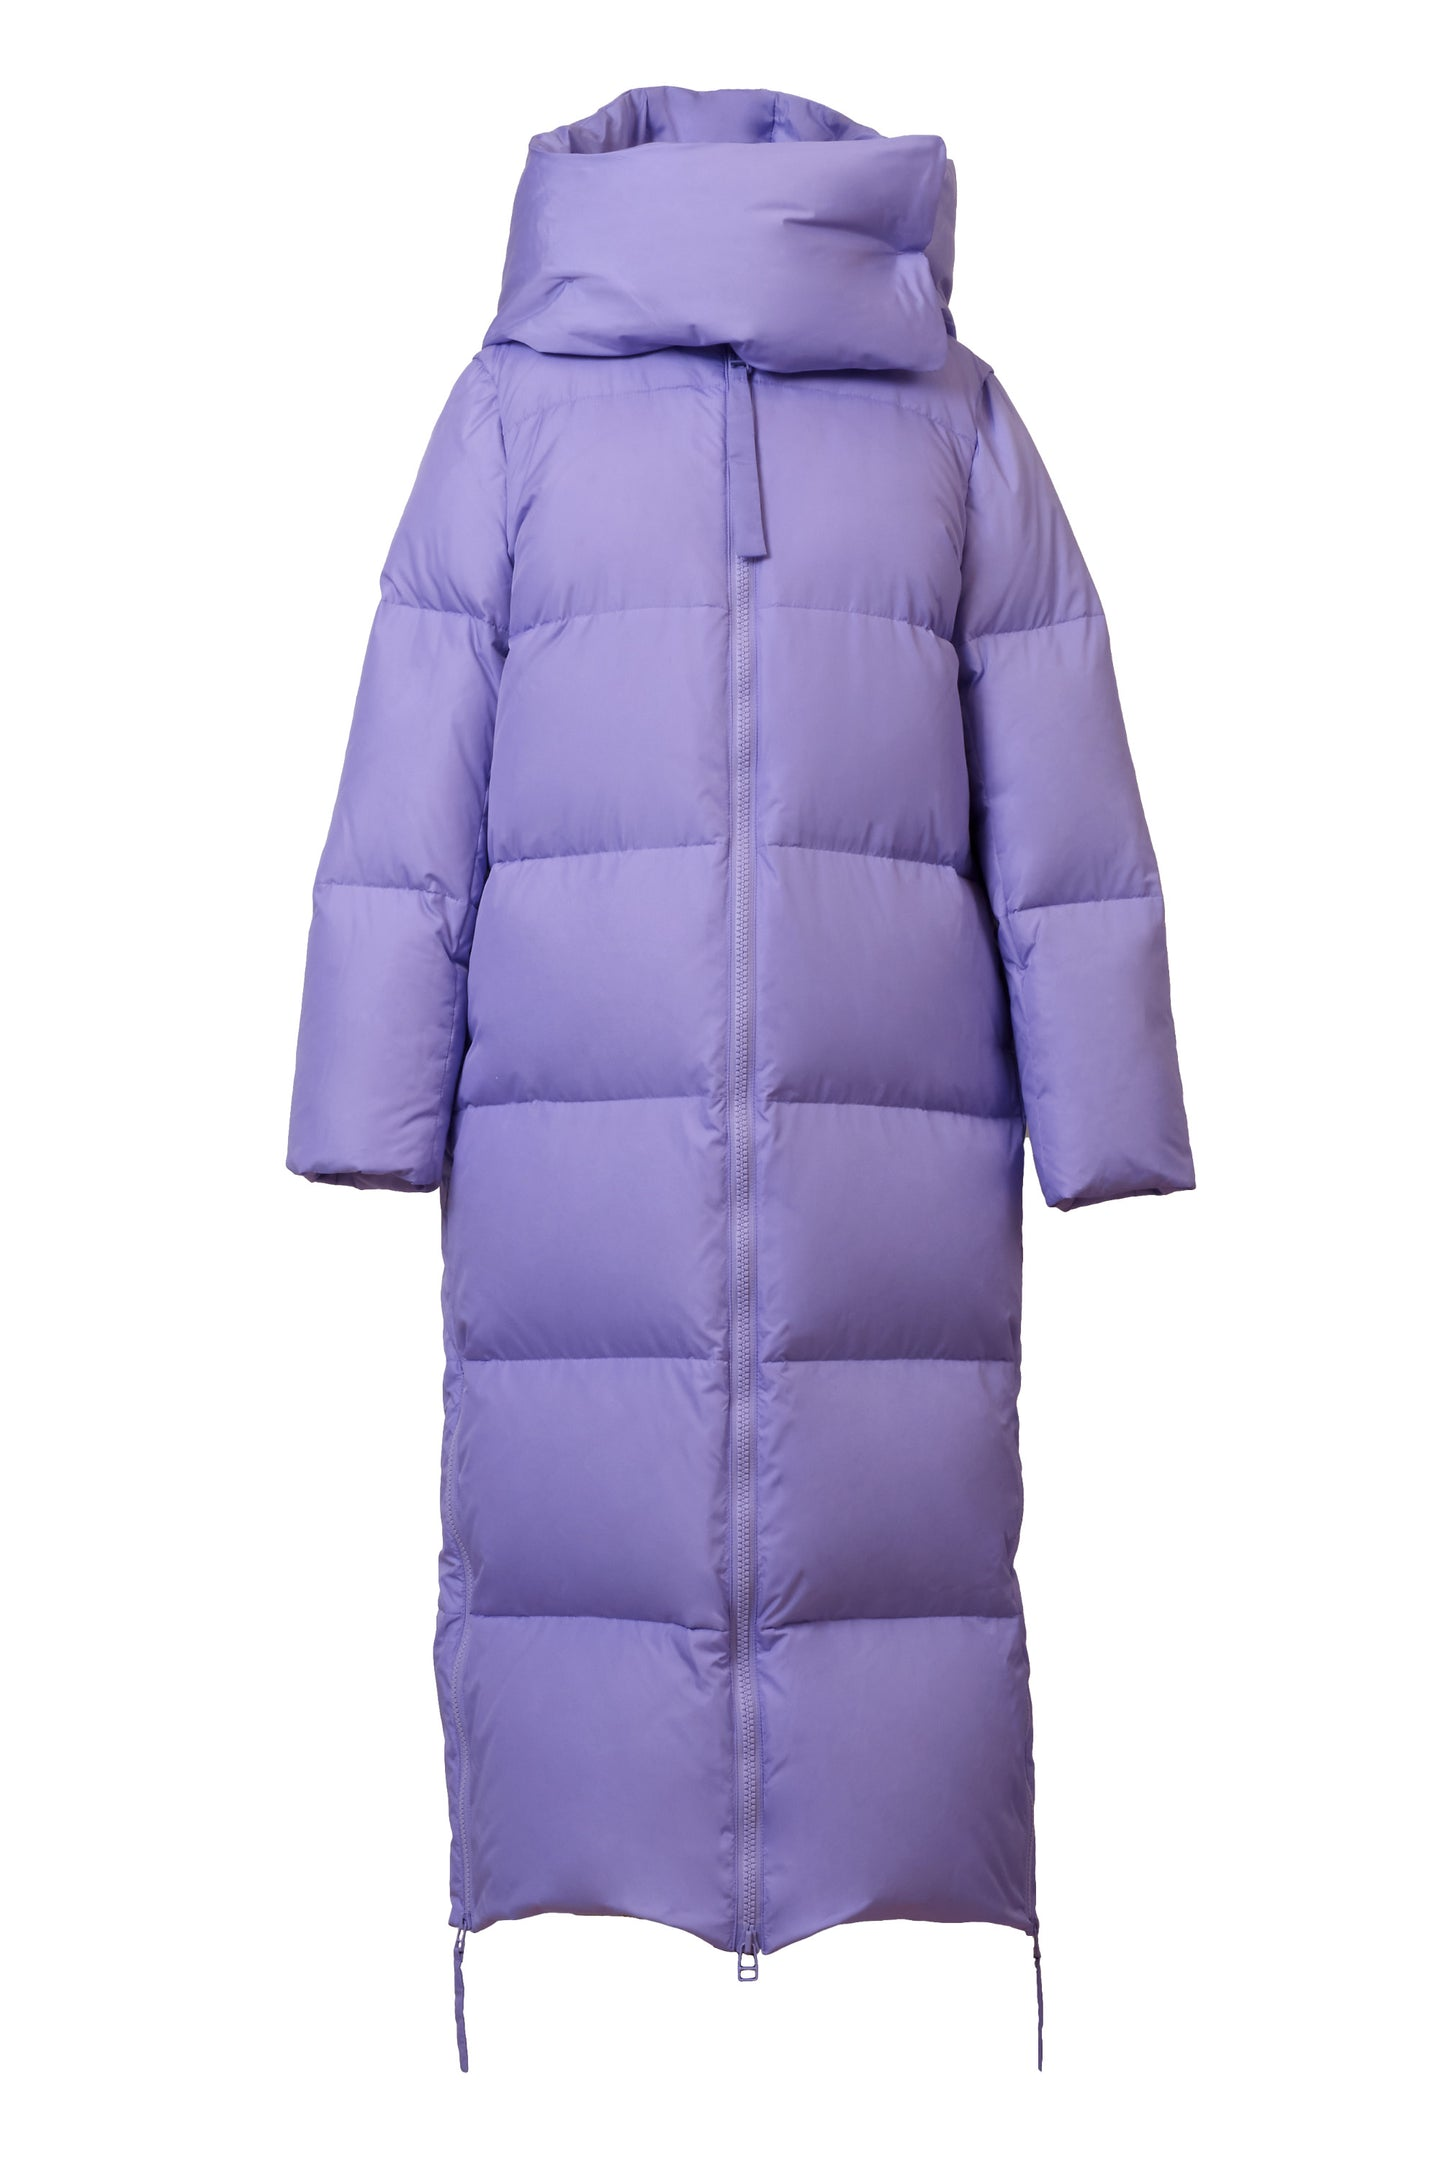 Long Down Coat | Lilac